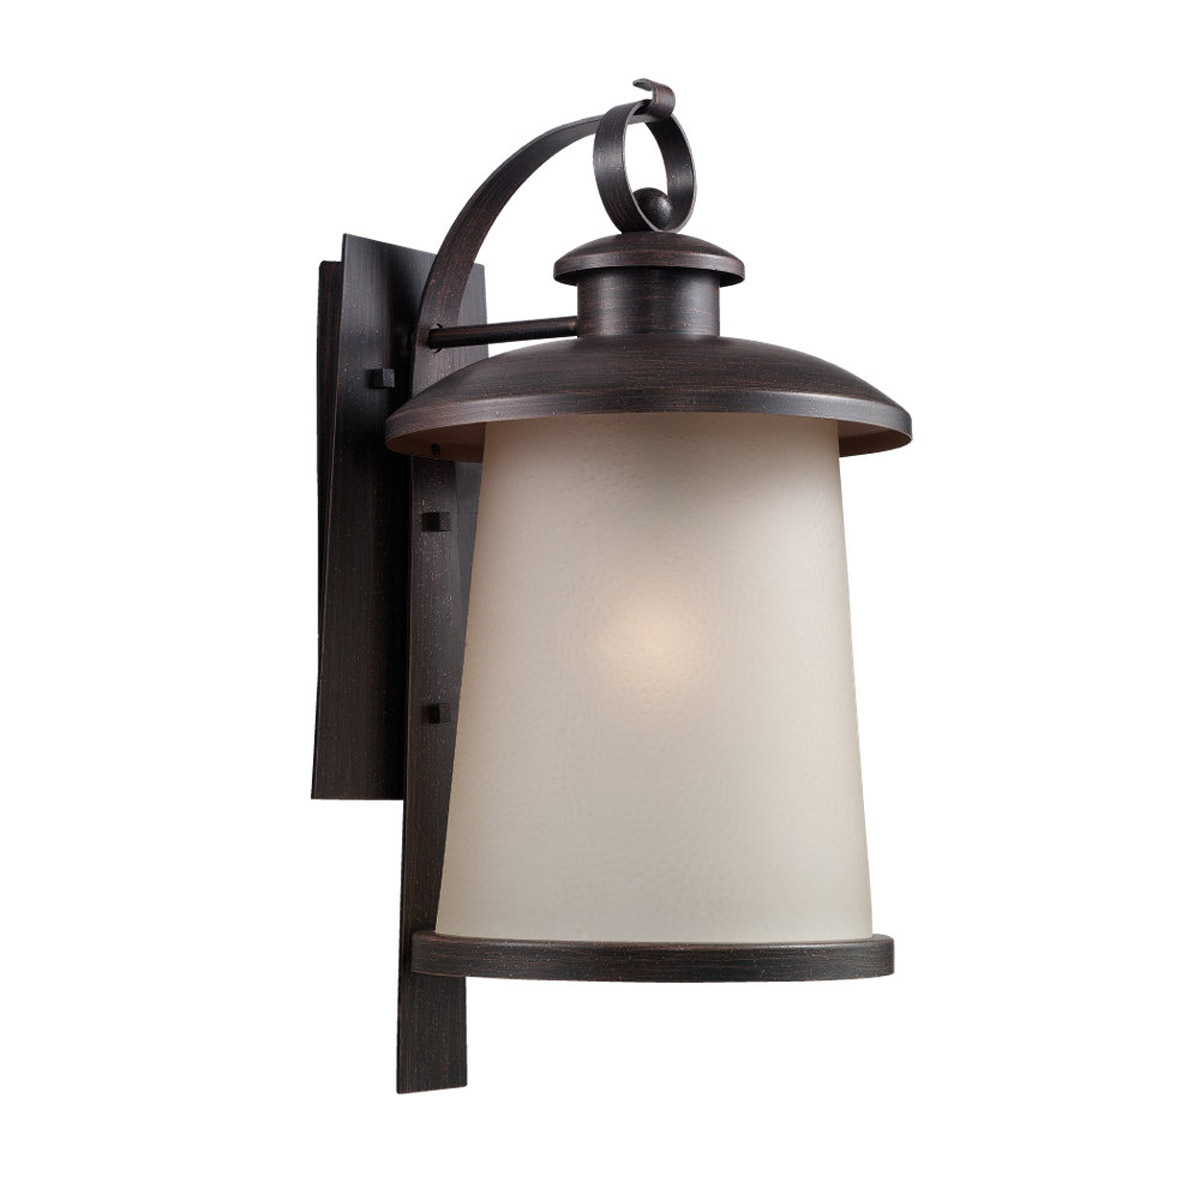 Sea Gull Lighting 59th Street 1 Light Outdoor Wall Lantern in Textured Rust Patina 88332-08